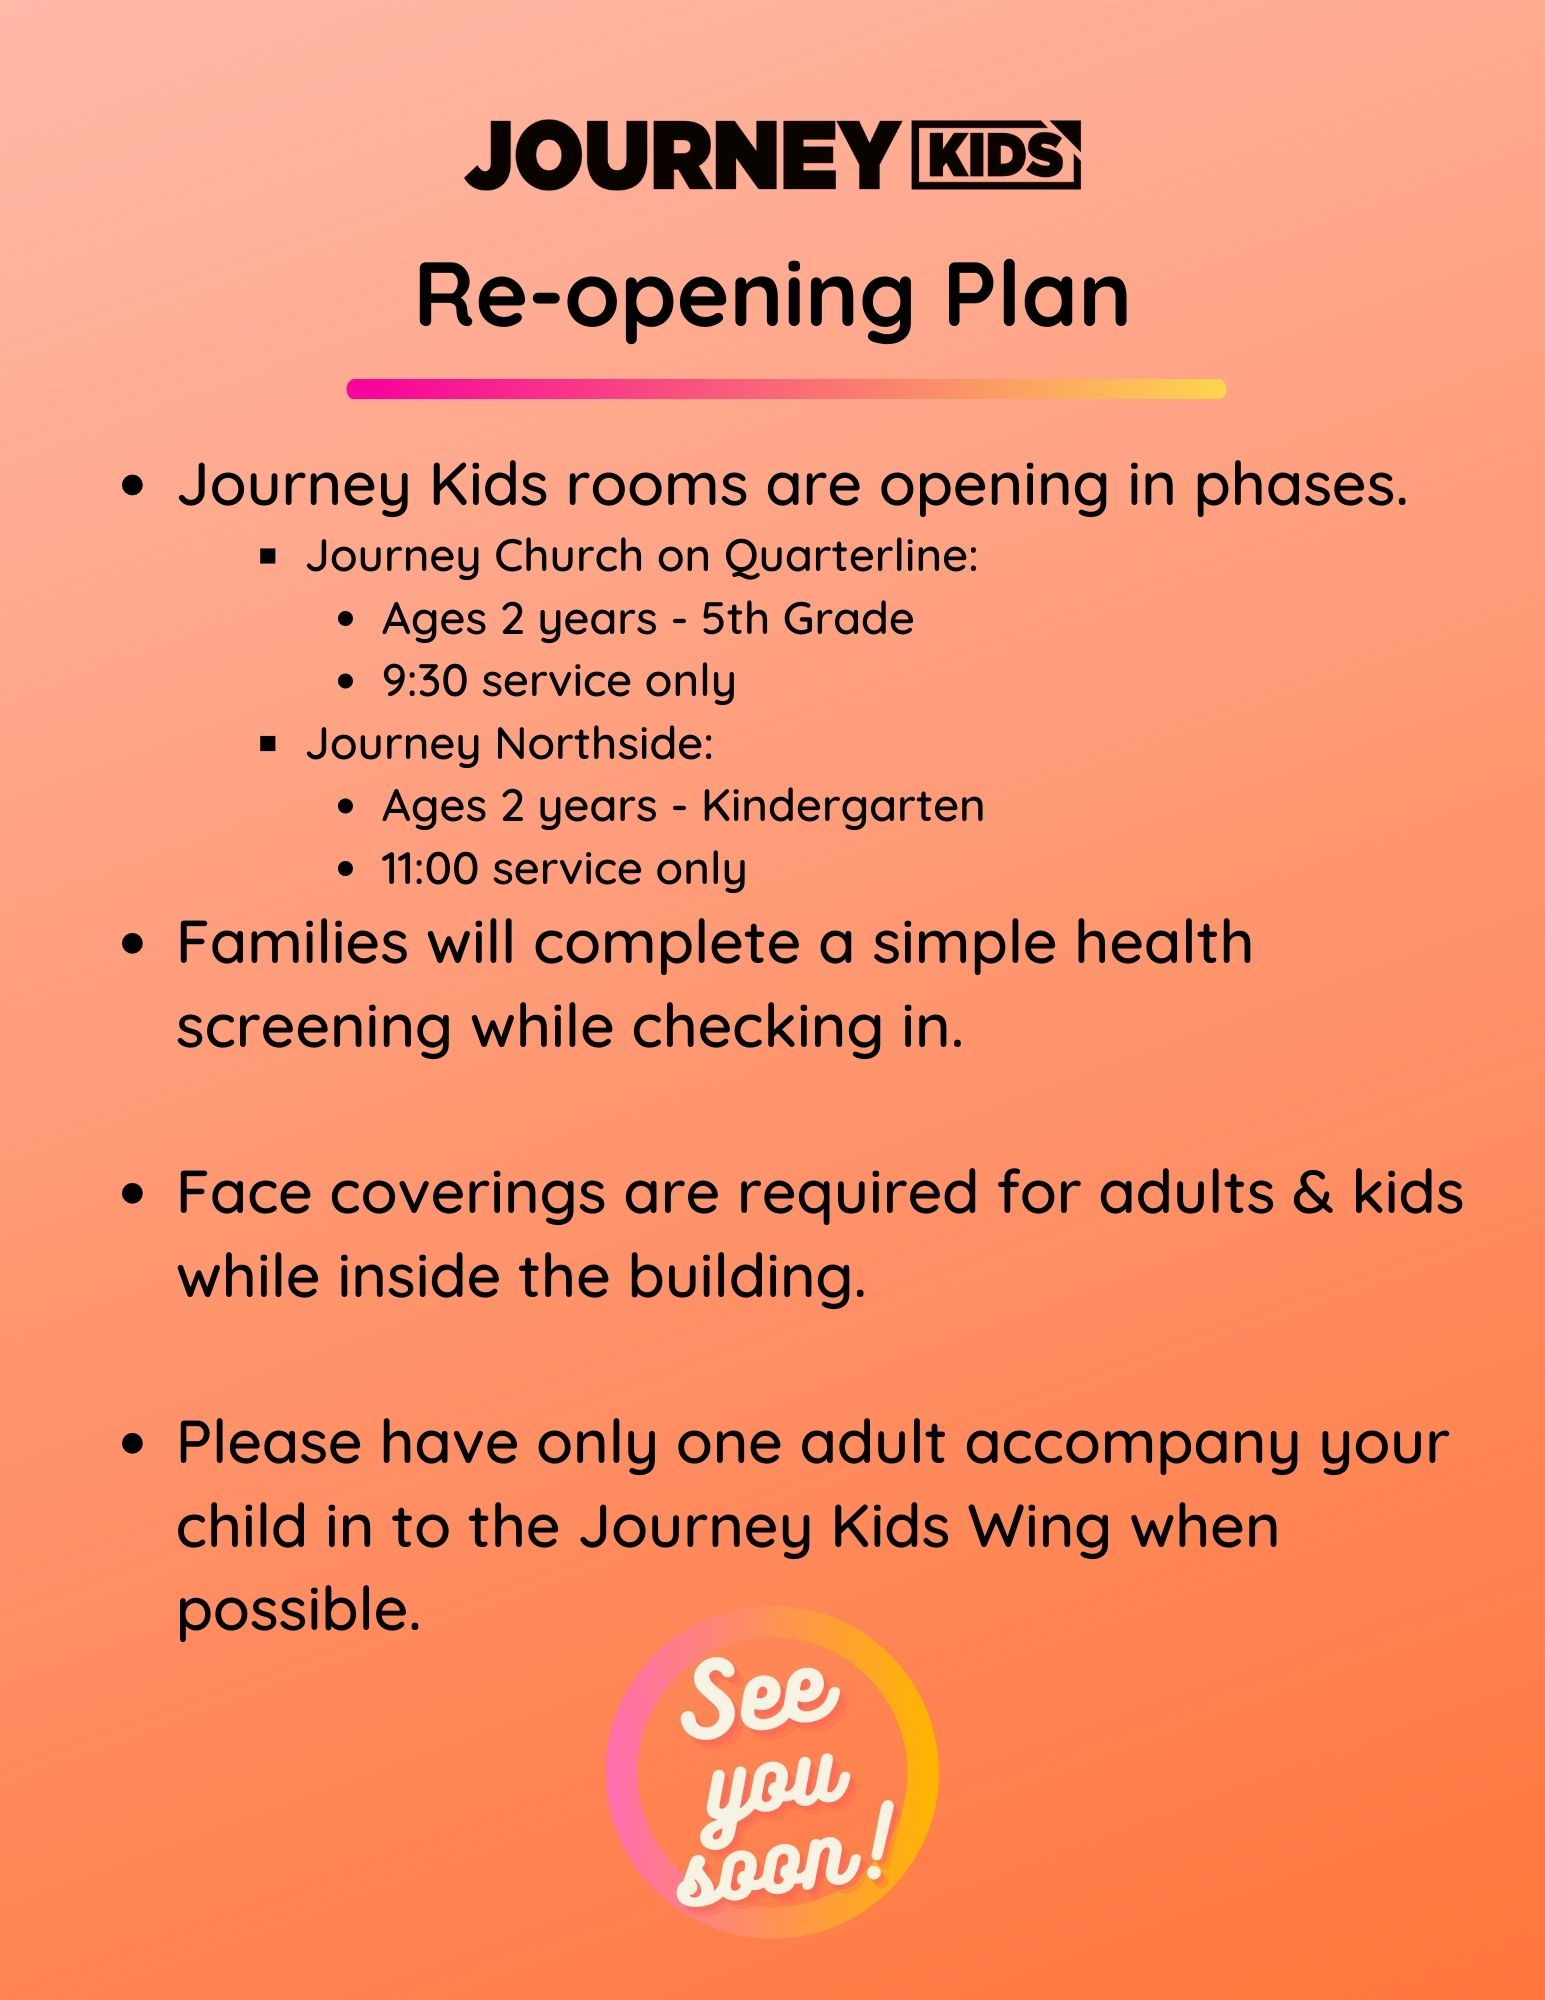 Journey Kids Reopening Plan, Phase 2